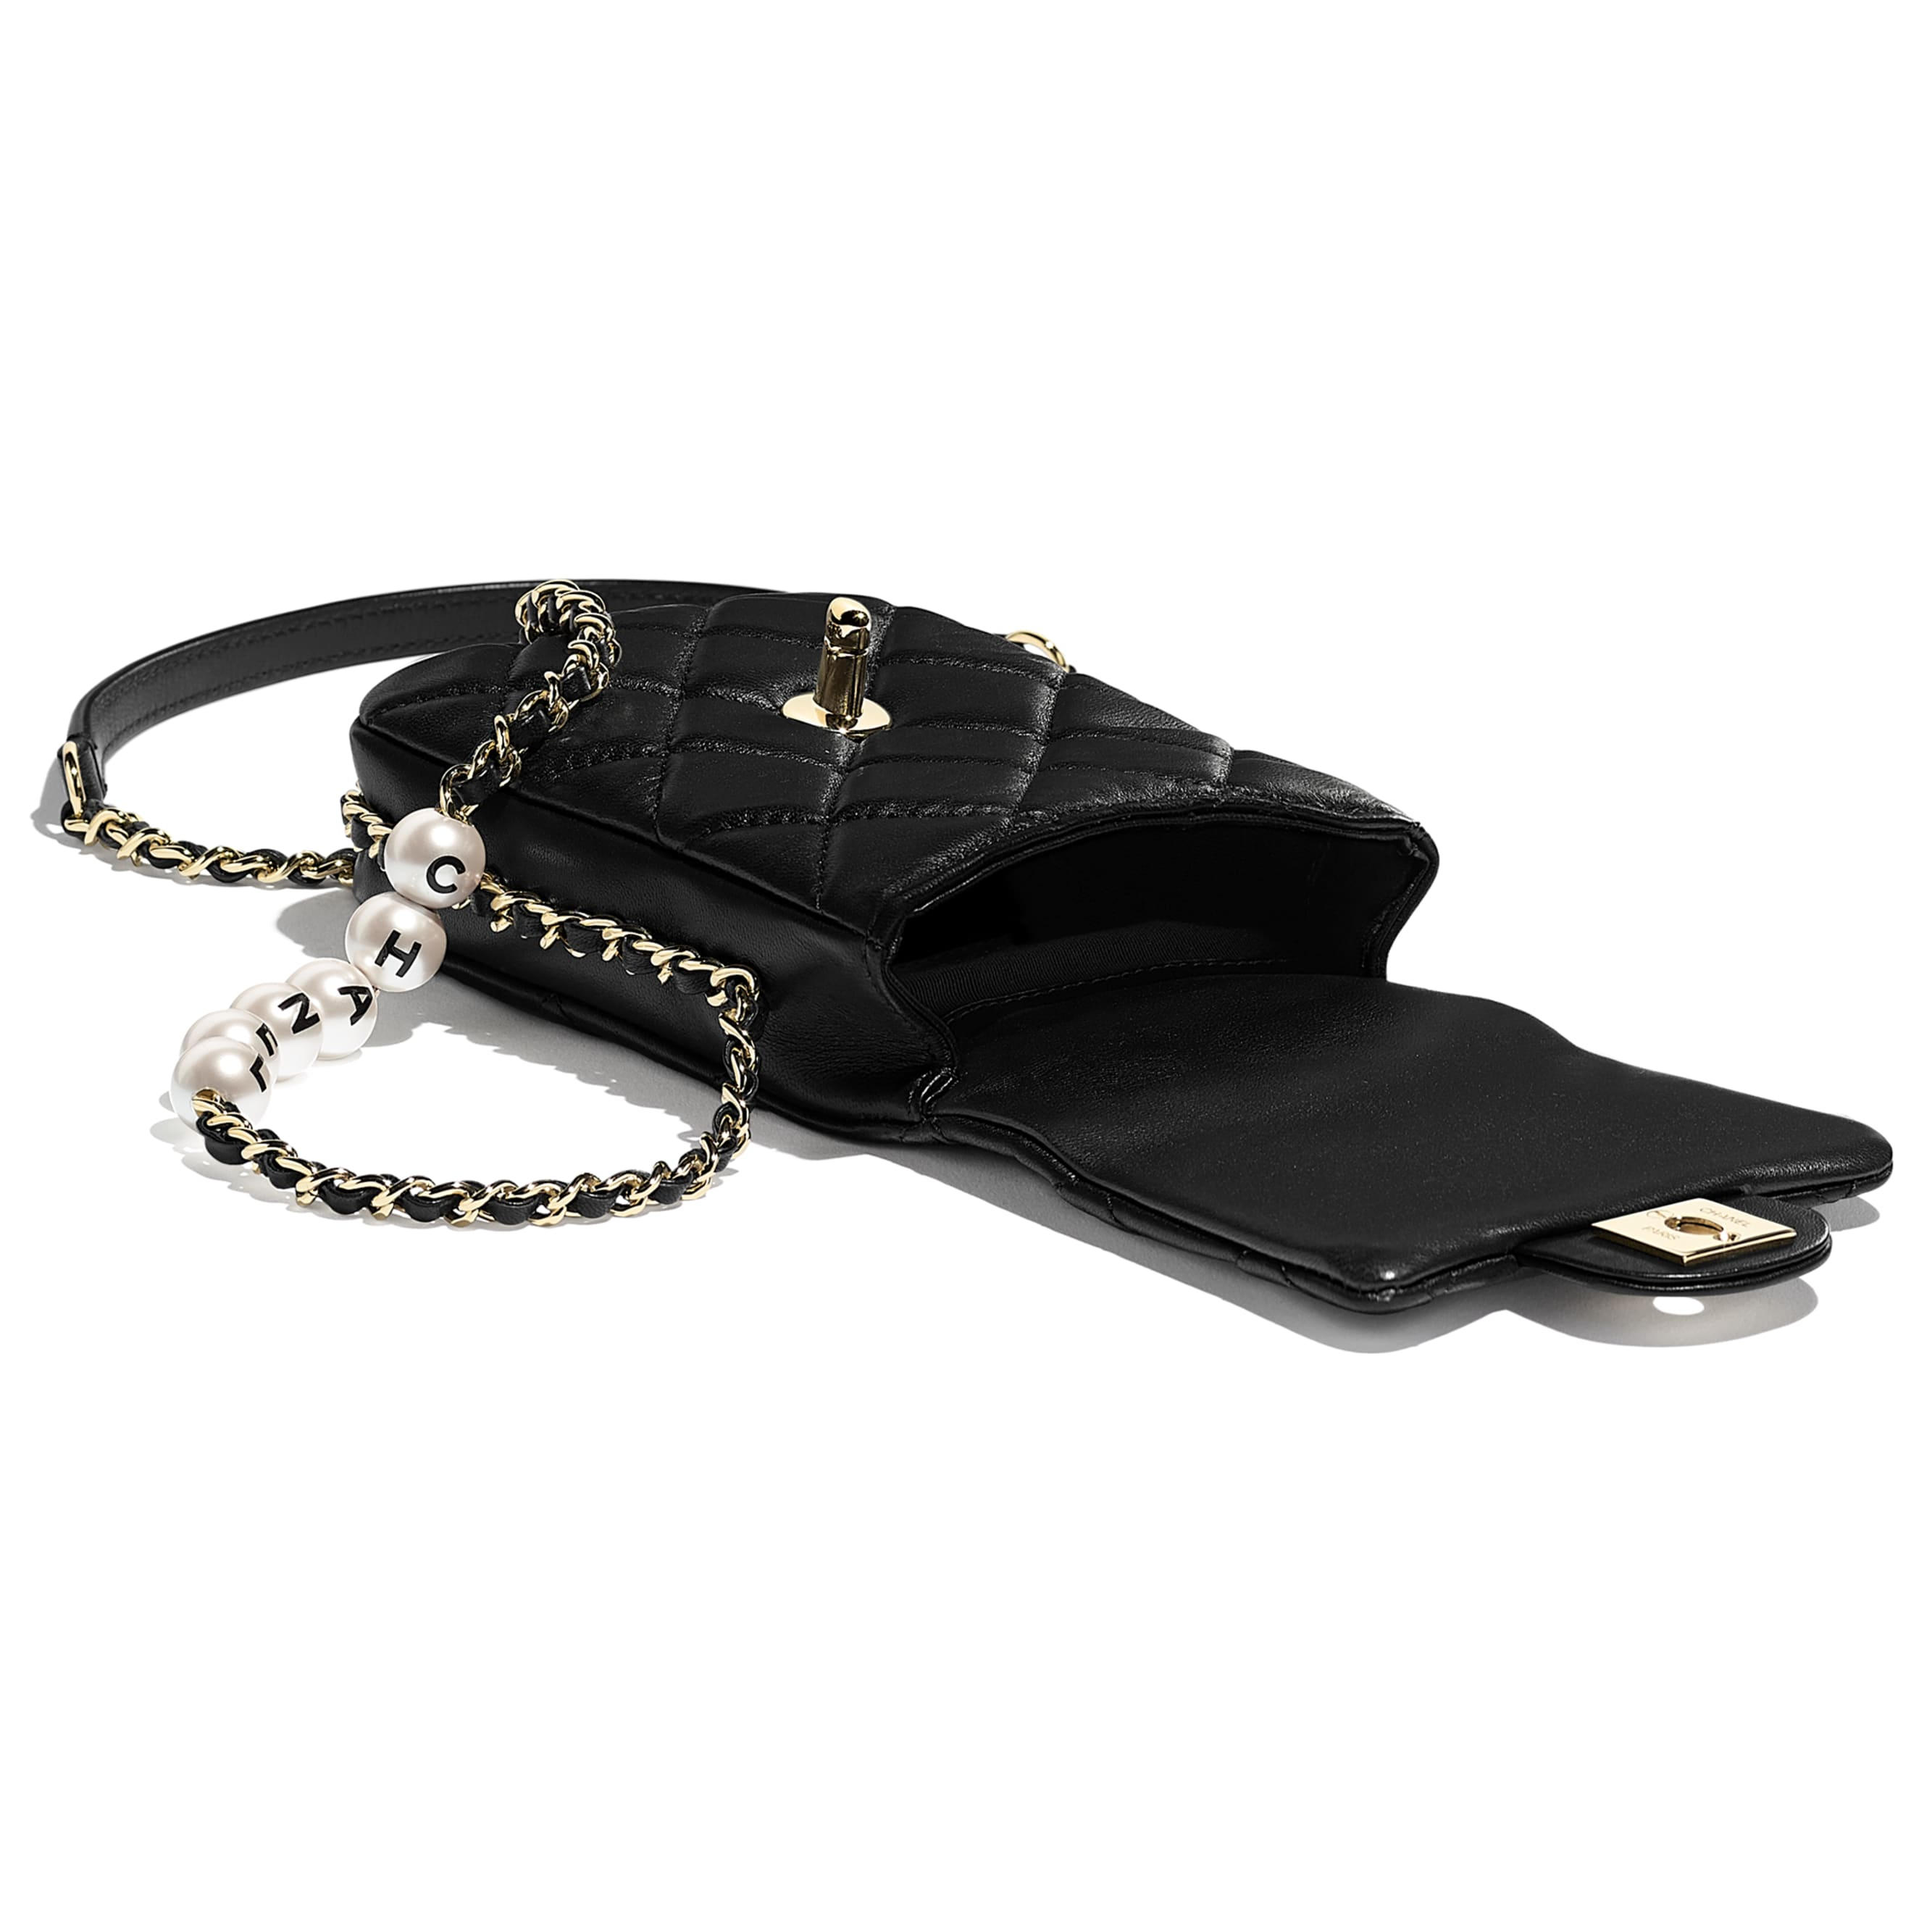 Small Flap Bag - Black - Lambskin, Imitation Pearls & Gold-Tone Metal - CHANEL - Other view - see standard sized version